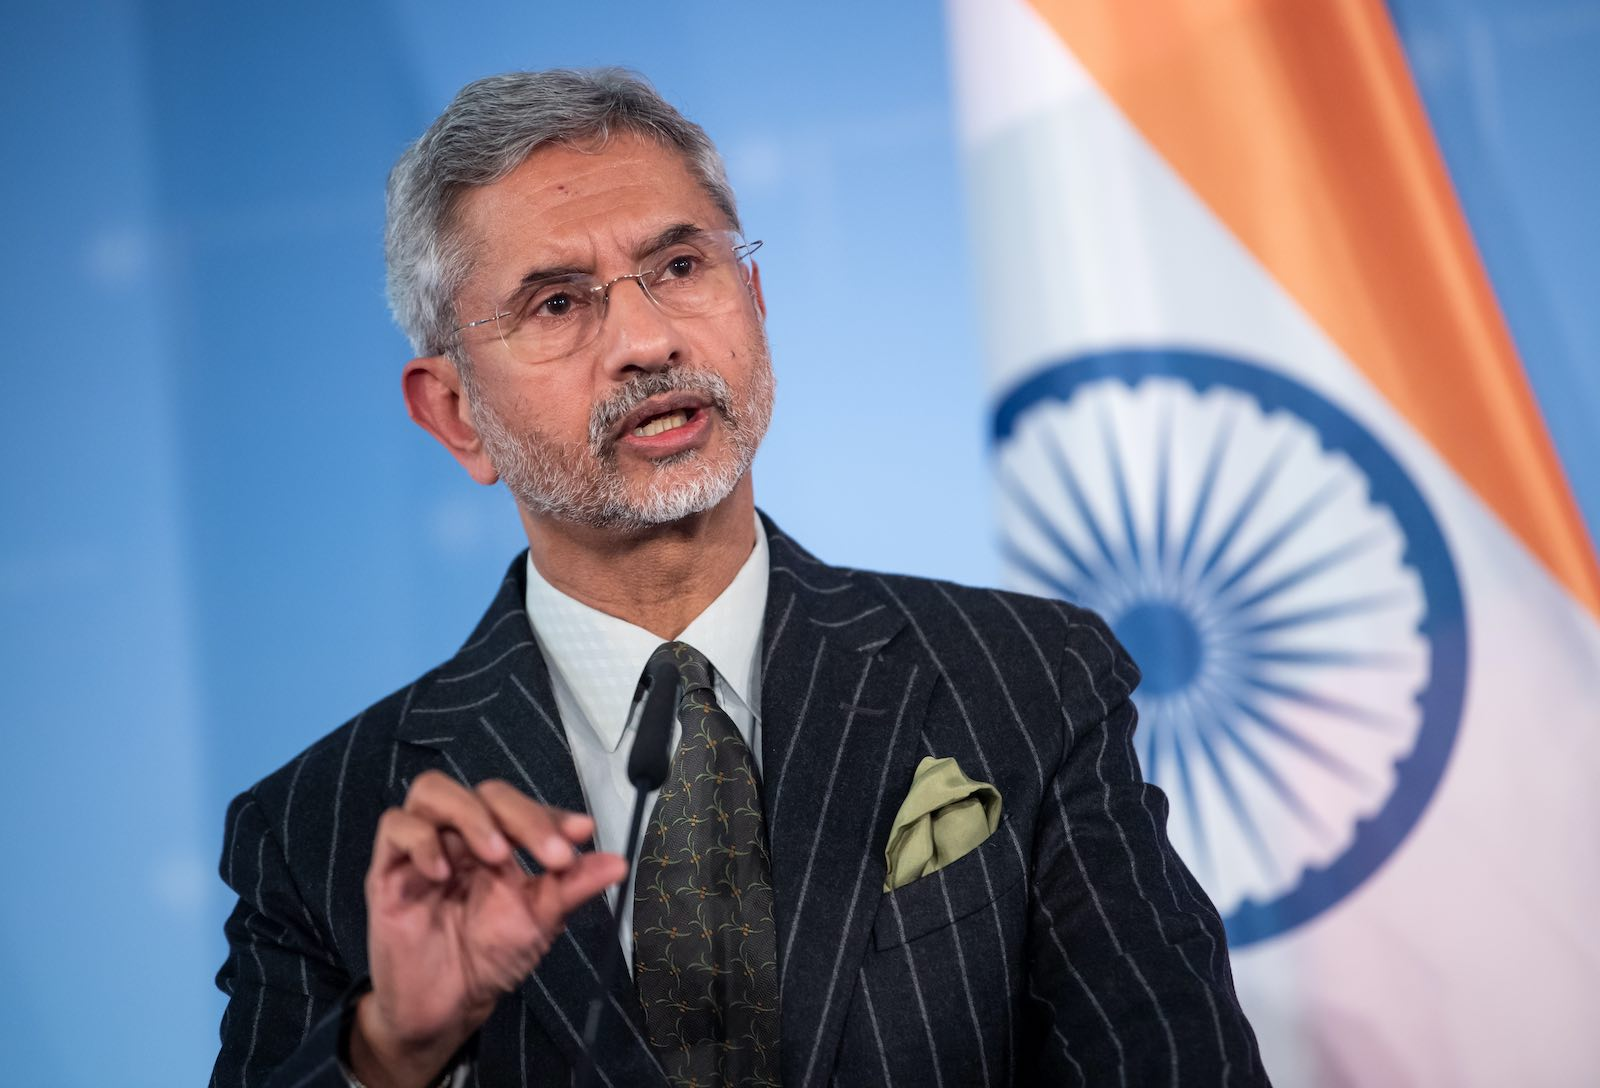 Subrahmanyam Jaishankar, Foreign Minister of India, at a press conference in Berlin in February this year (Bernd von Jutrczenka/picture alliance via Getty Images)